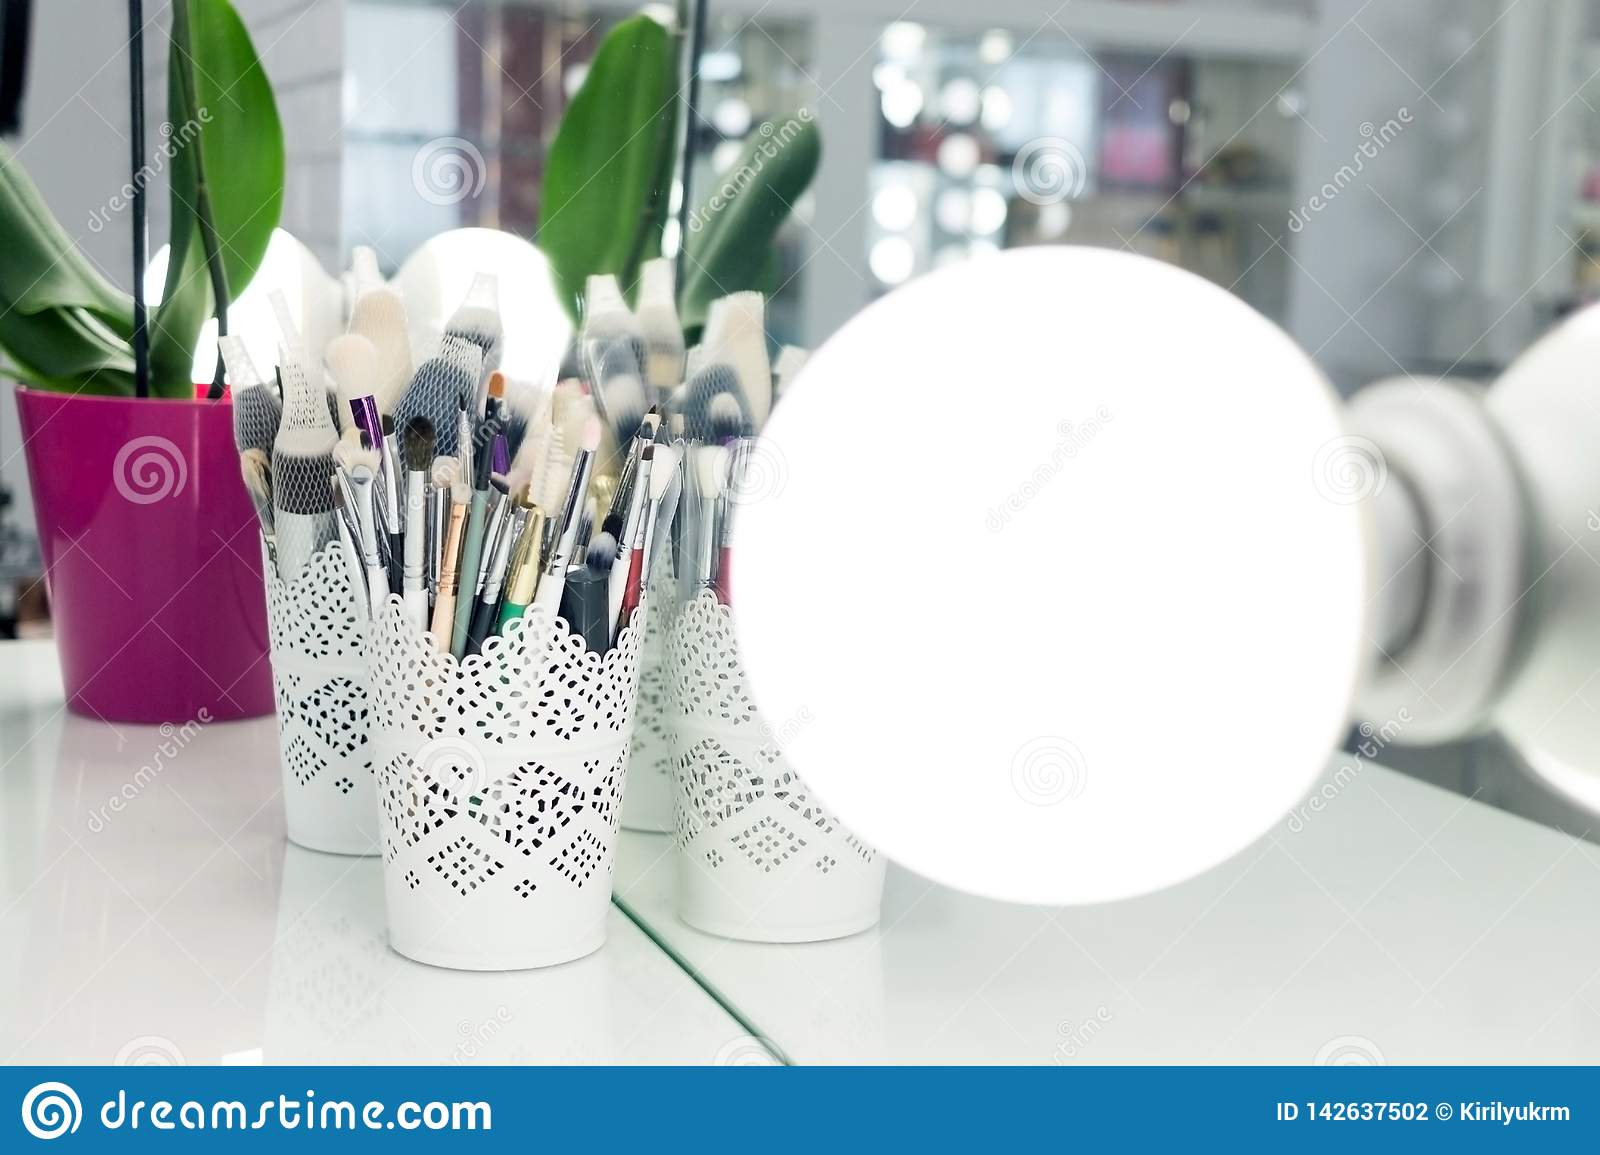 Interior Of A Beauty Salon Room With Makeup Mirror Lights And Black Chair Stock Photo Image Of Illuminated Bulb 142637502